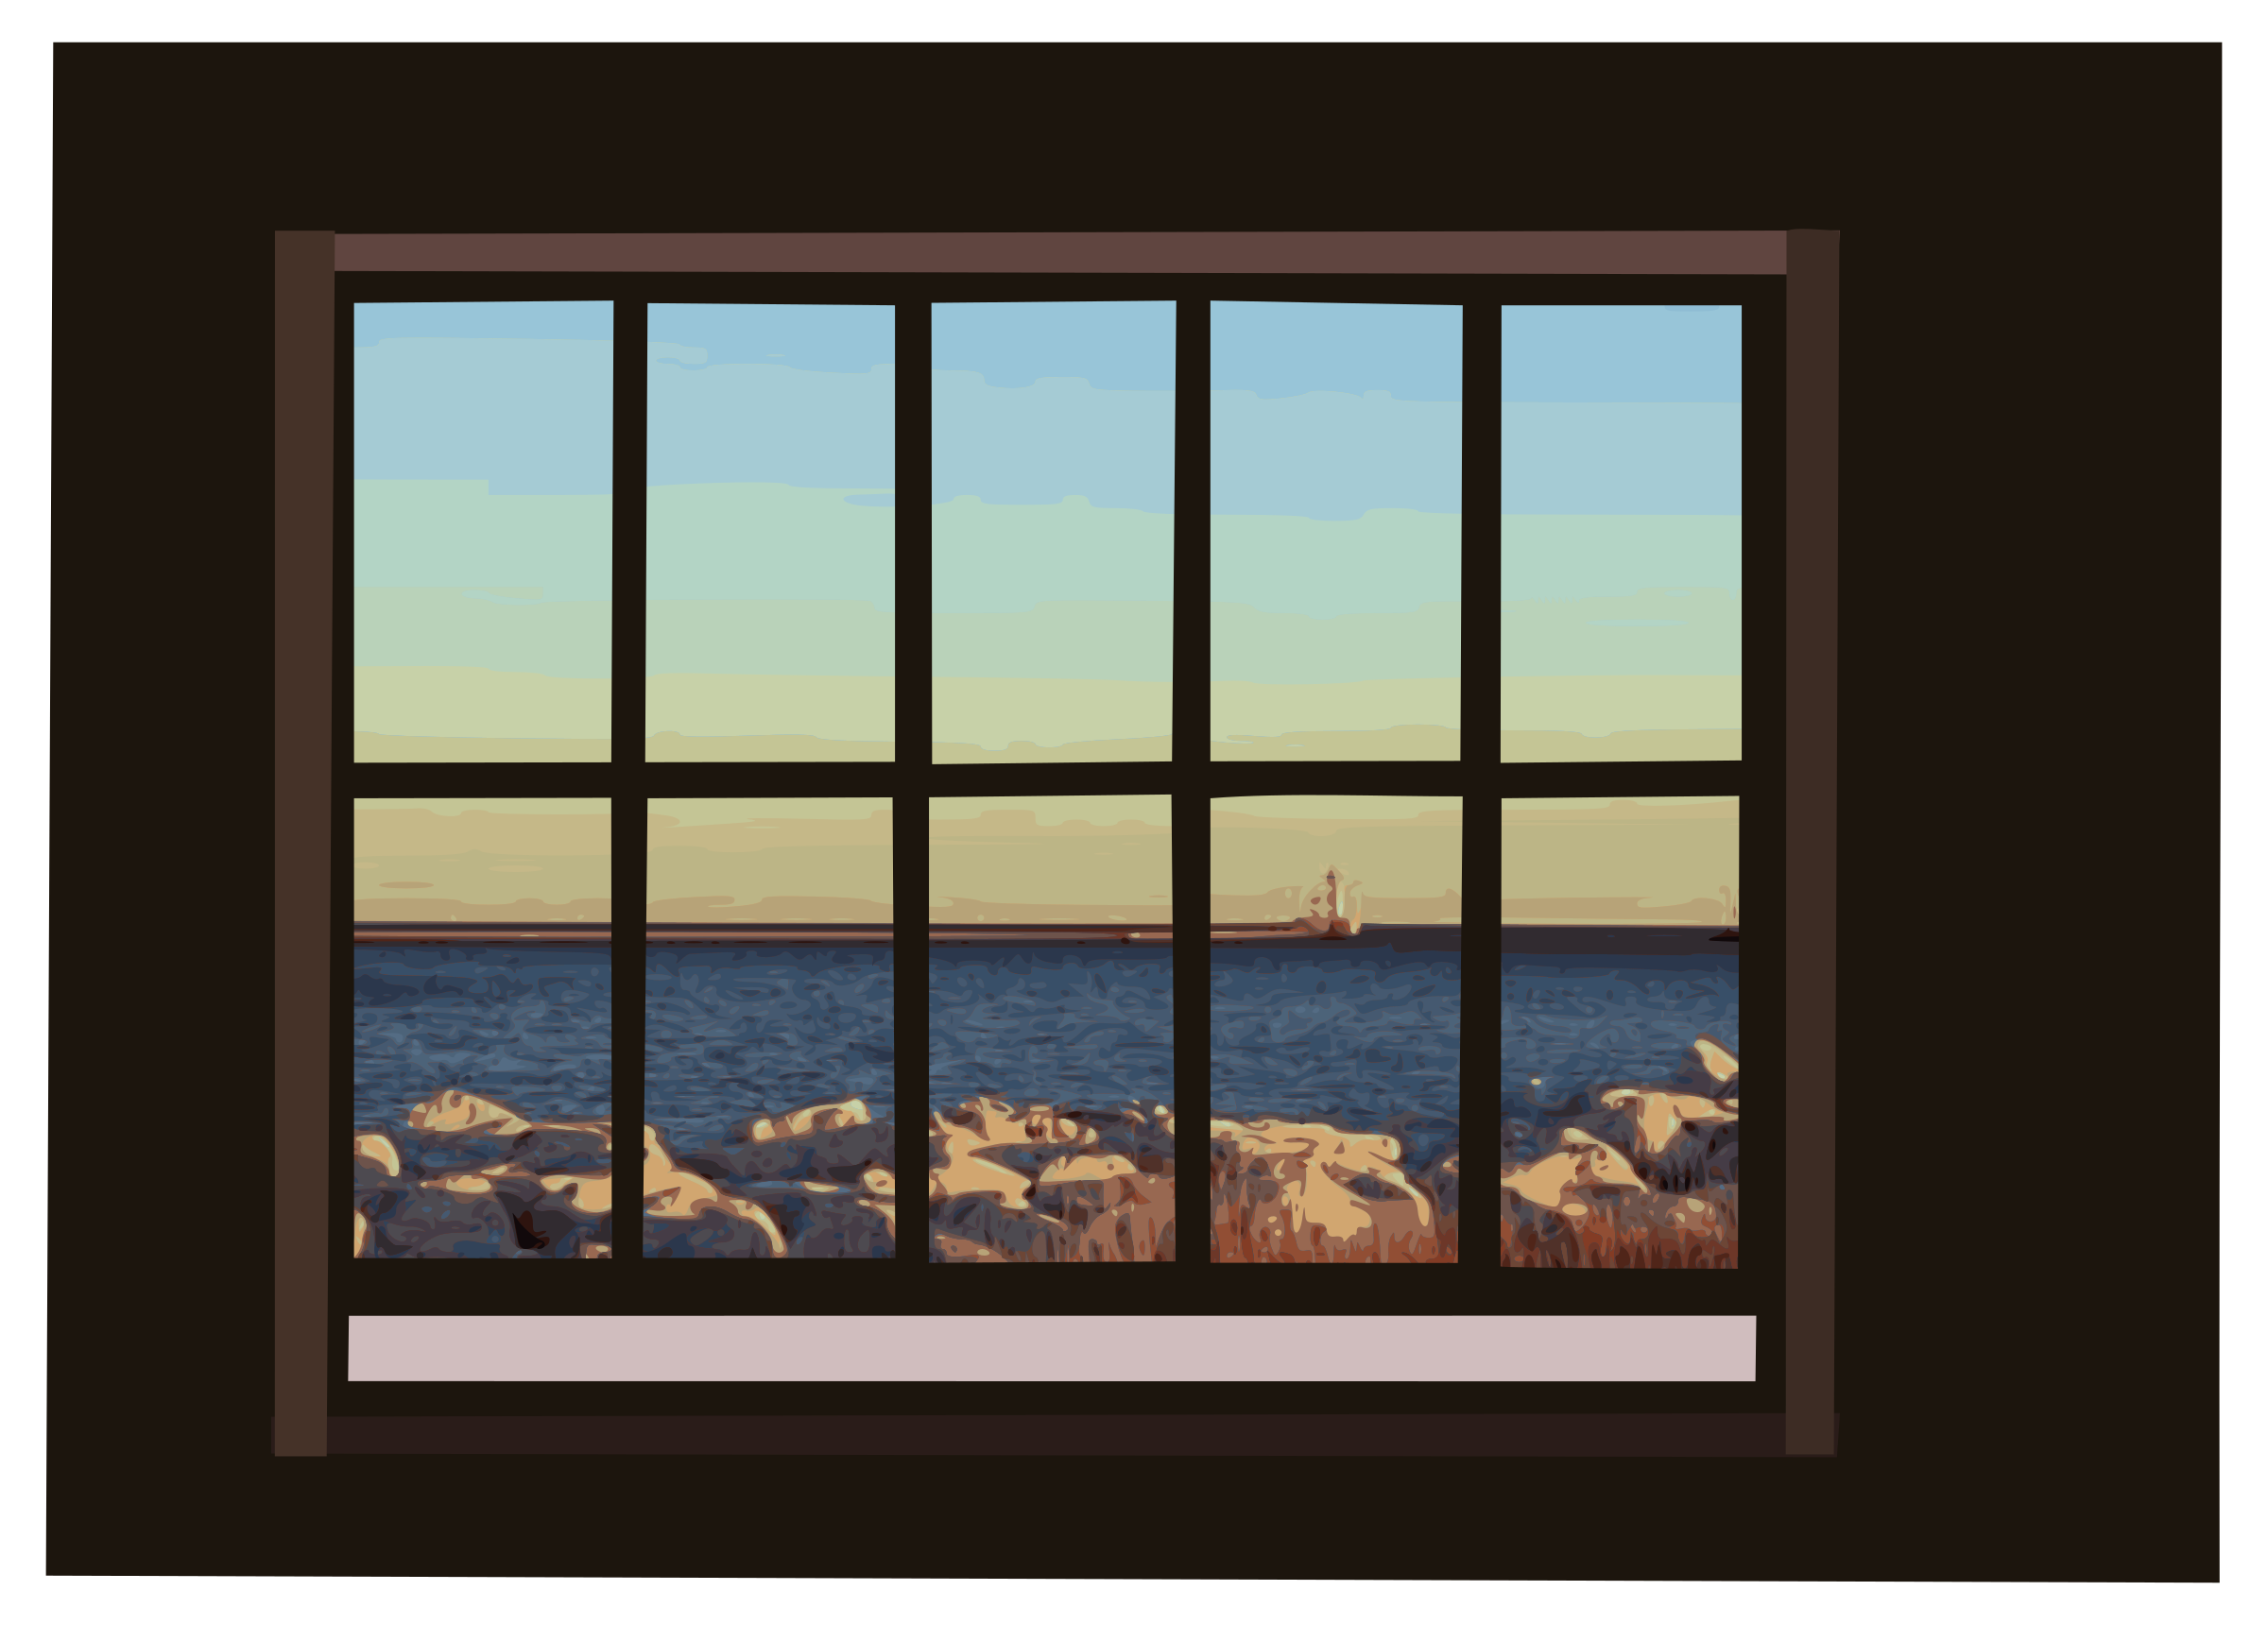 Clipart window with ocean view for Windows new window